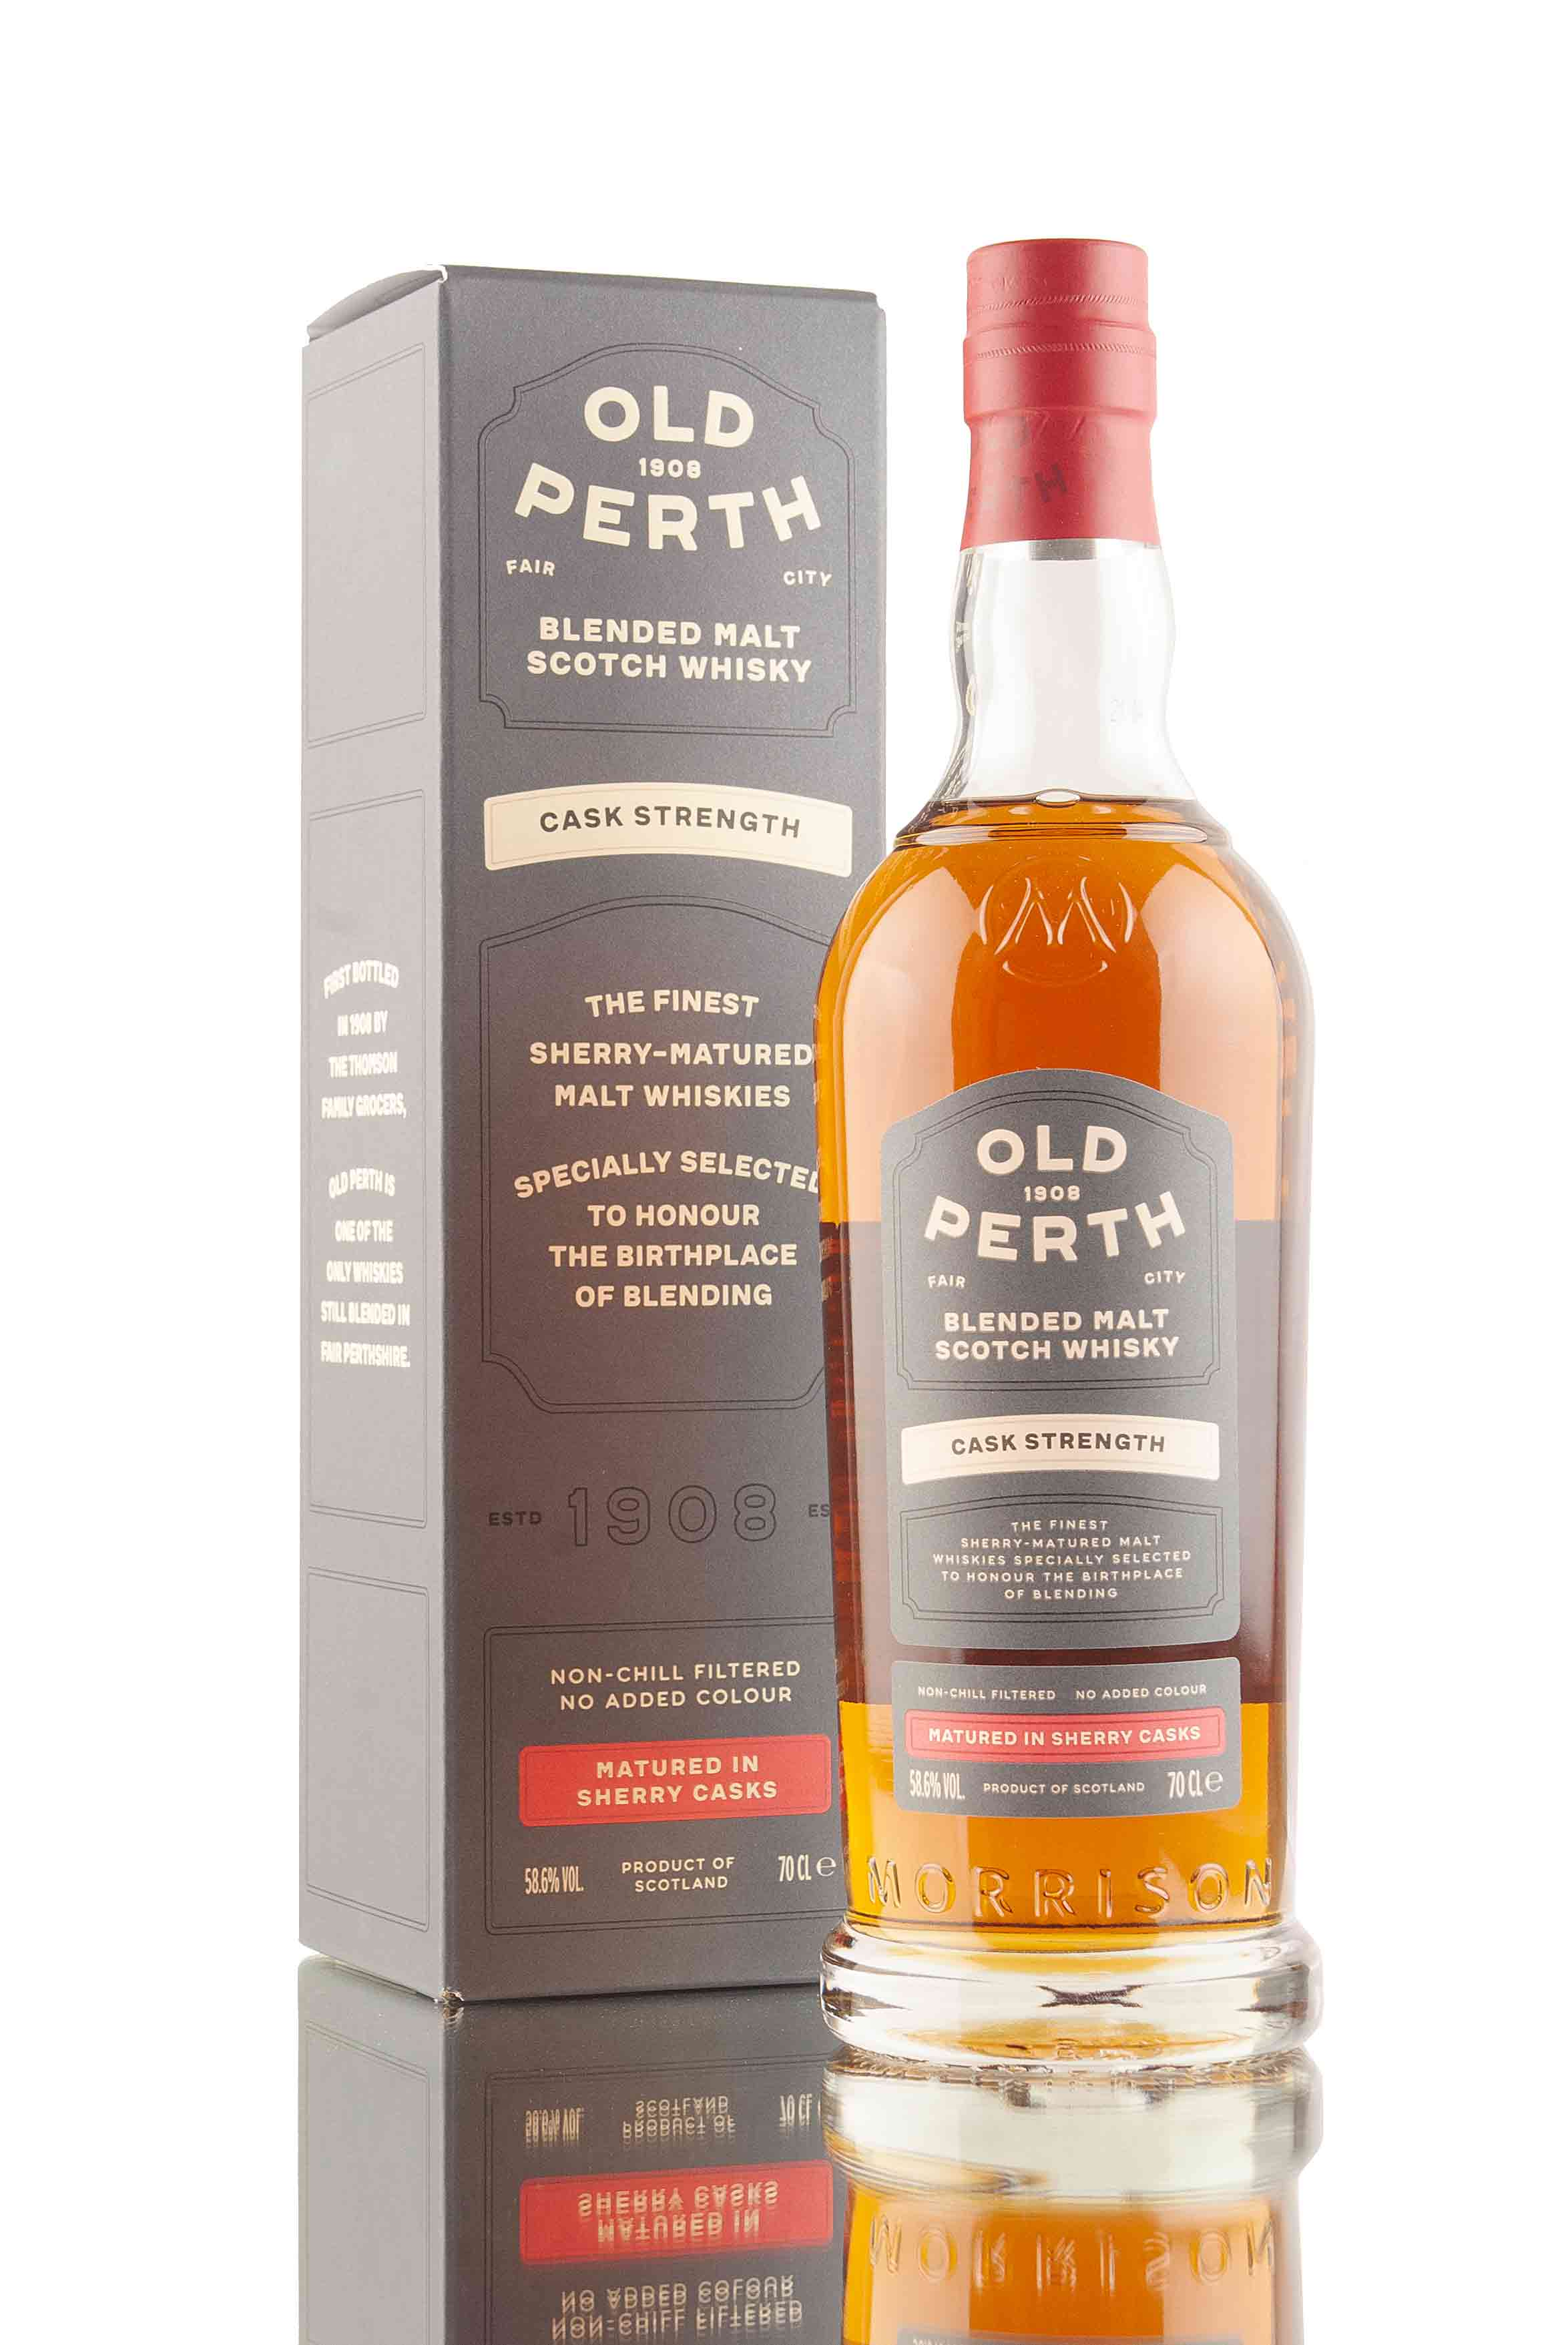 Old Perth Cask Strength Blended Malt Scotch Whisky | Abbey Whisky